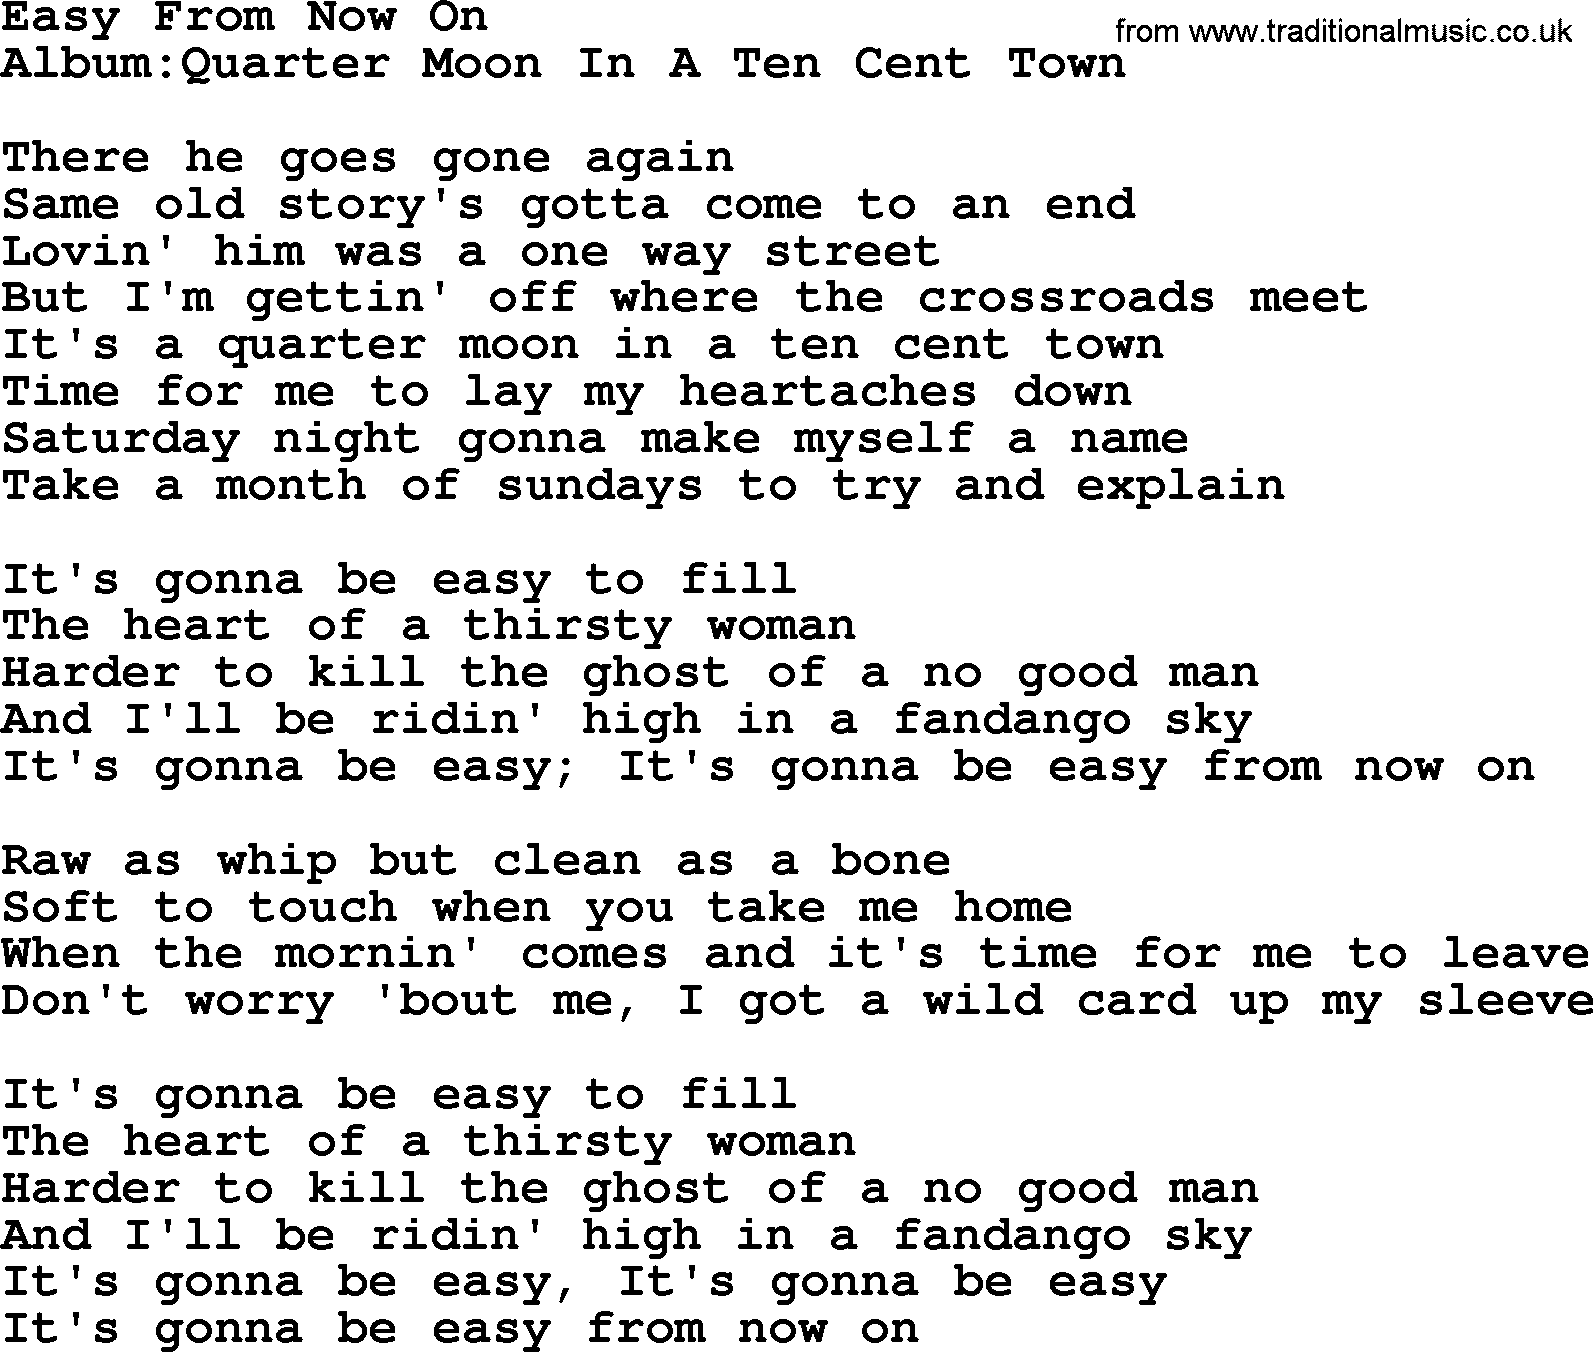 Emmylou Harris song: Easy From Now On, lyrics